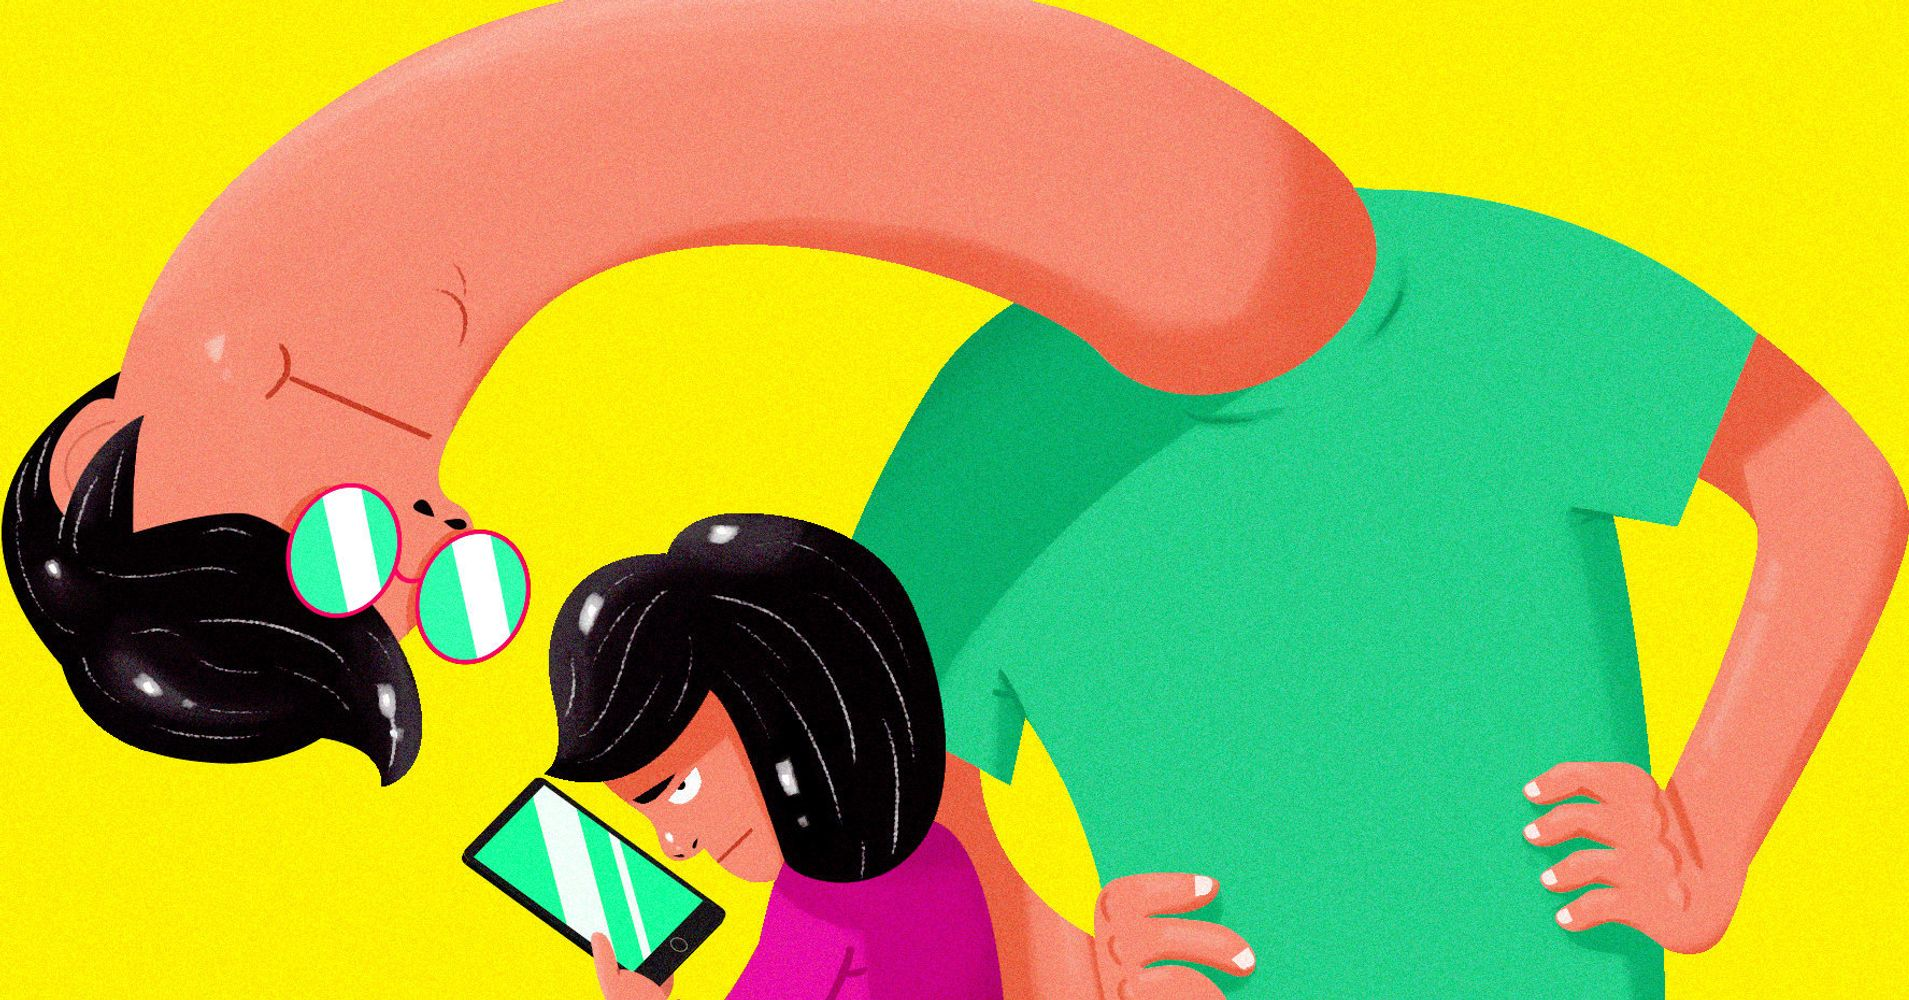 Bark, The App That Sees All Your Kids' Sexts, Has Scanned Over 2 Million Phones